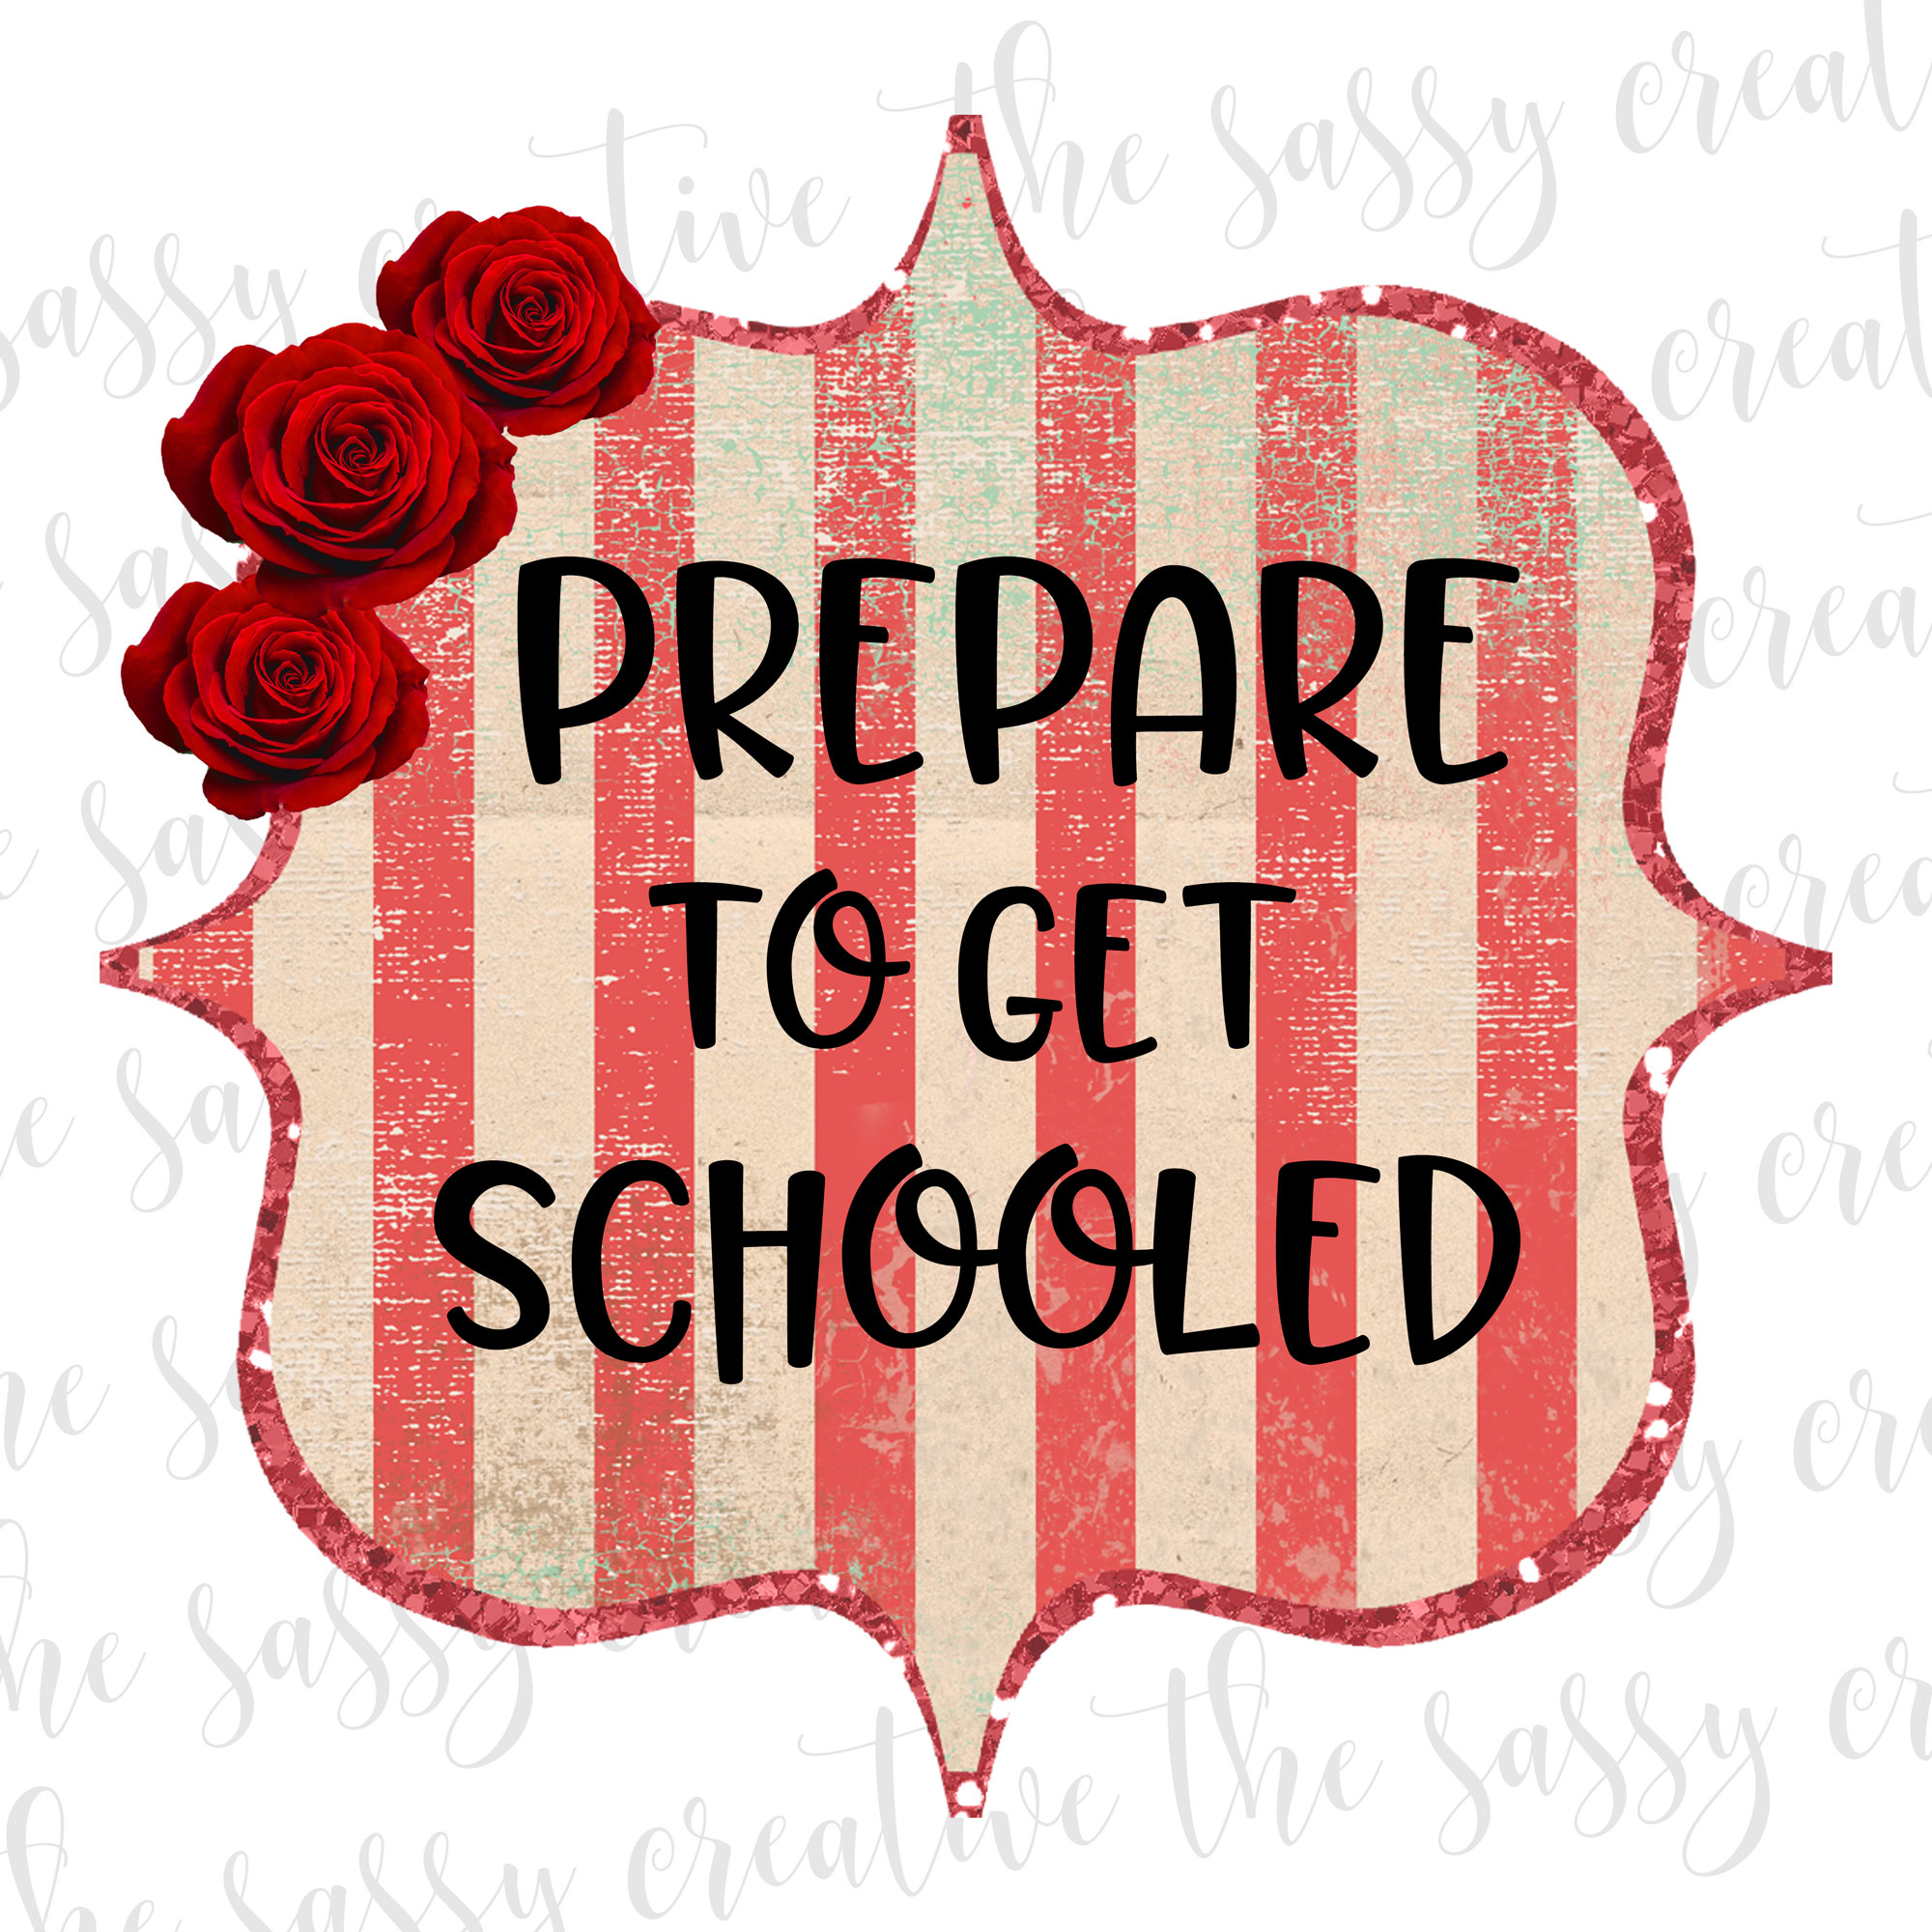 Prepare-to-get-schooled-cover